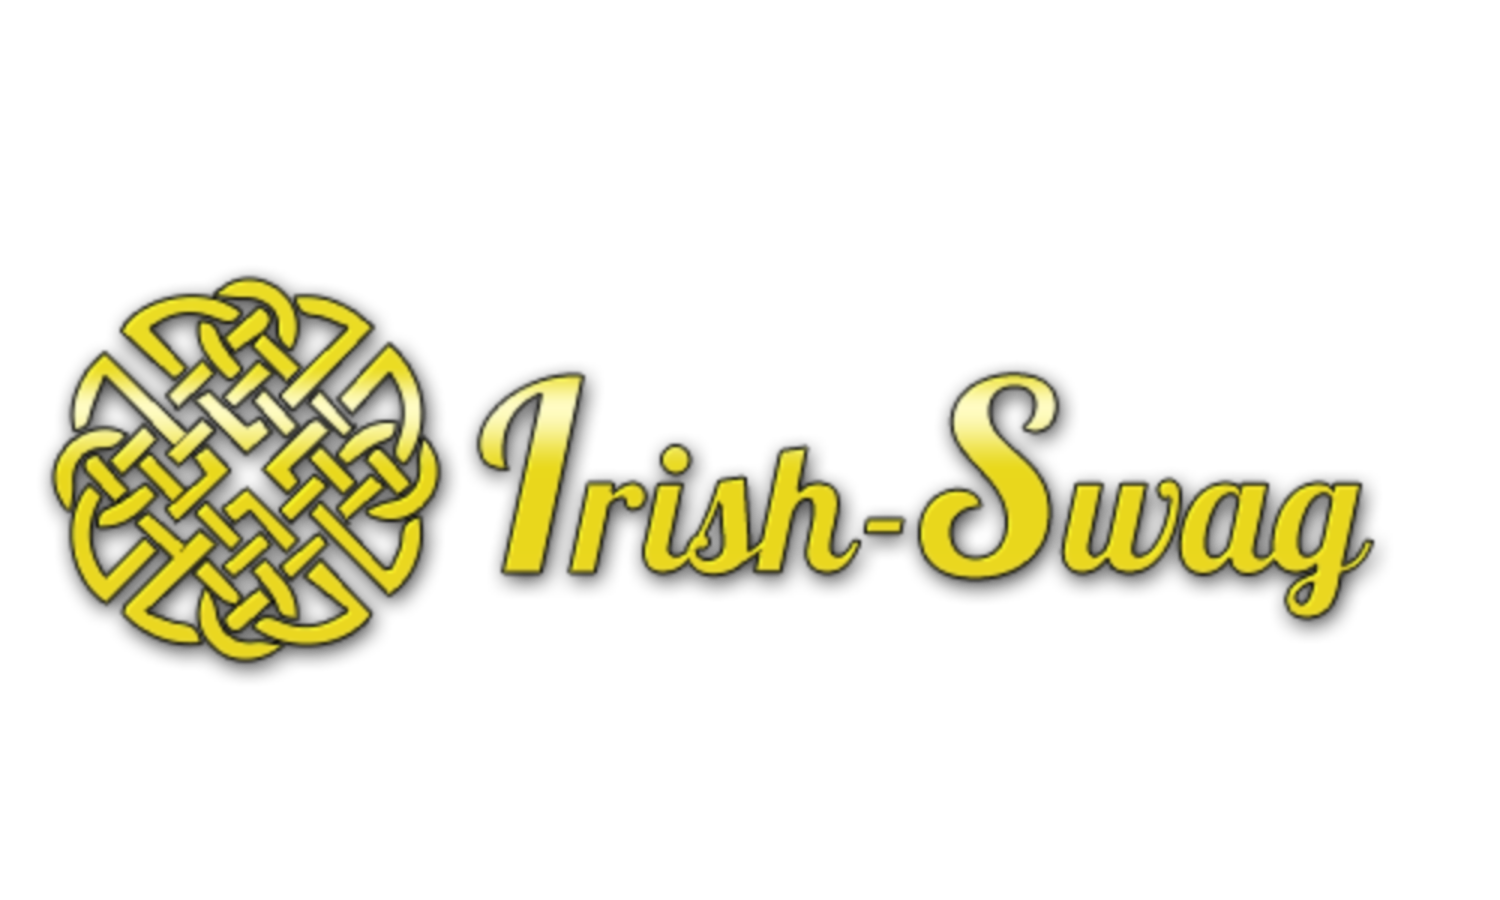 Irish Swag T-Shirts